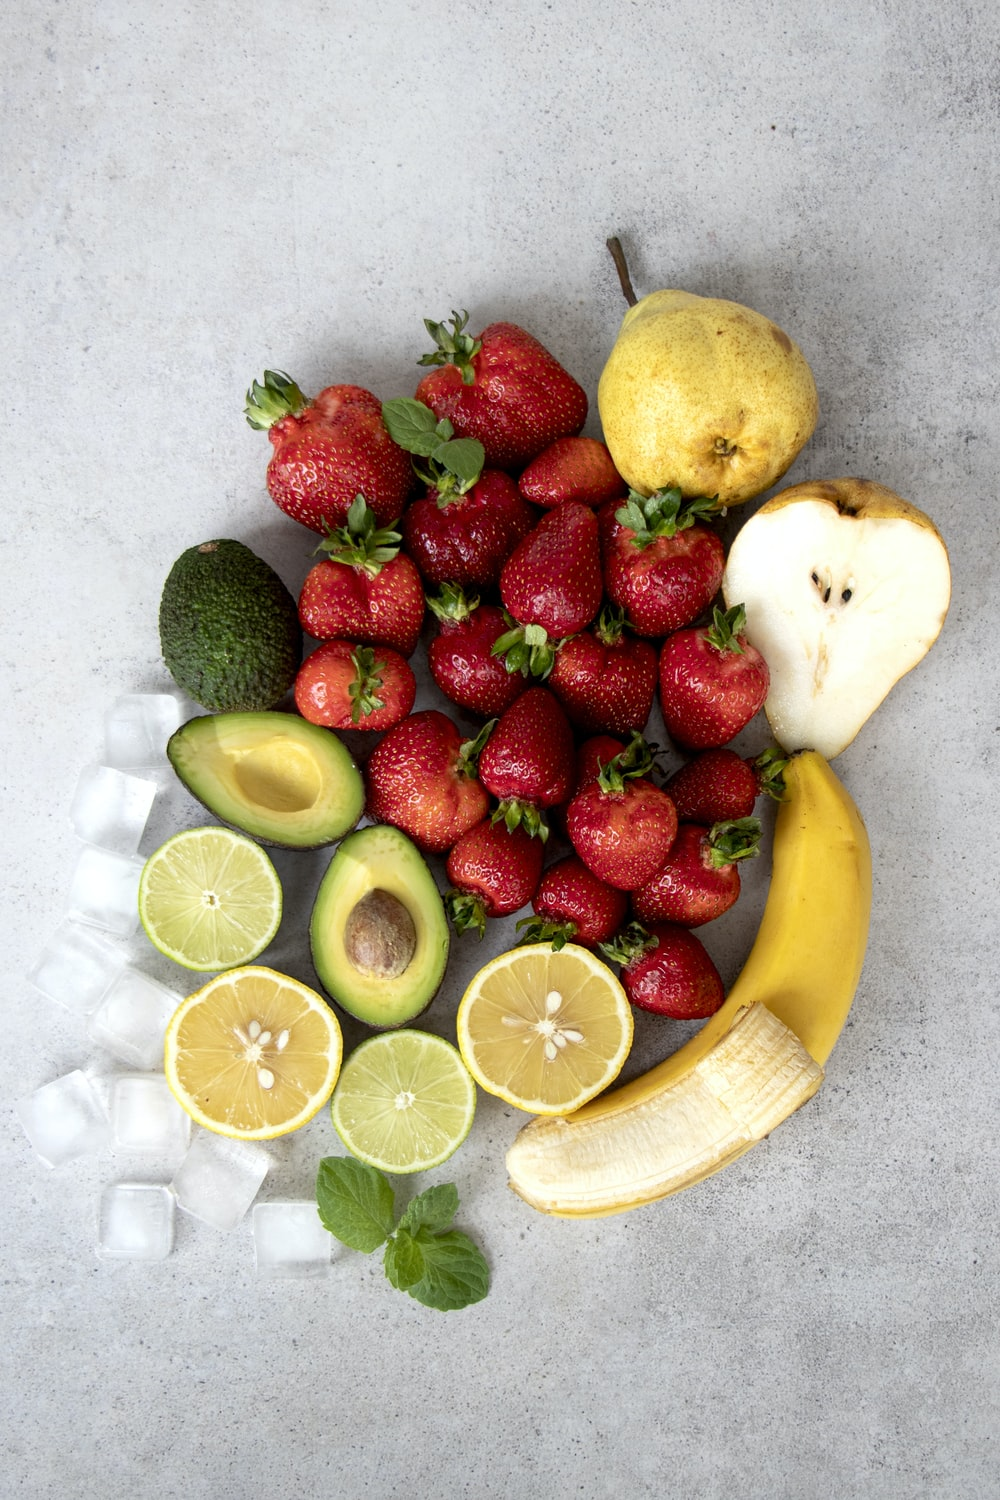 strawberries and bananas on white table